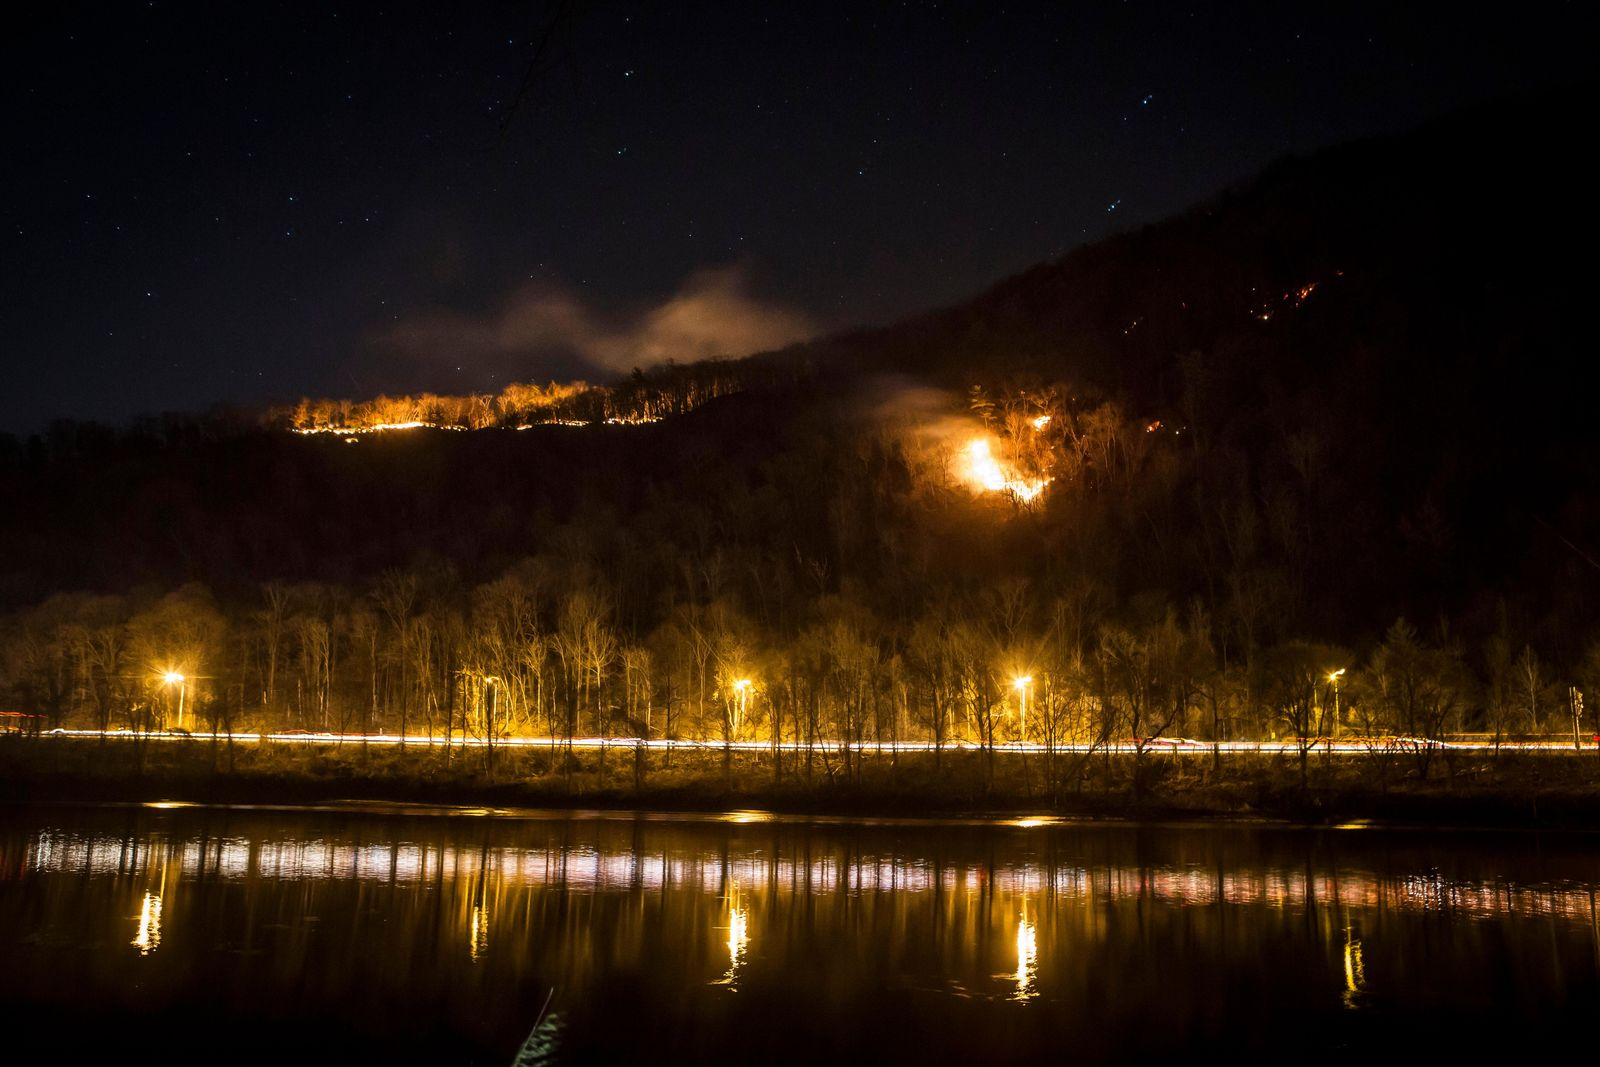 A fire burns on Mount Tammany in the Delaware Water Gap National Recreation Area in Hardwick Township, N.J., Sunday, Feb. 23, 2020. (Daniel Freel/The New Jersey Herald via AP)